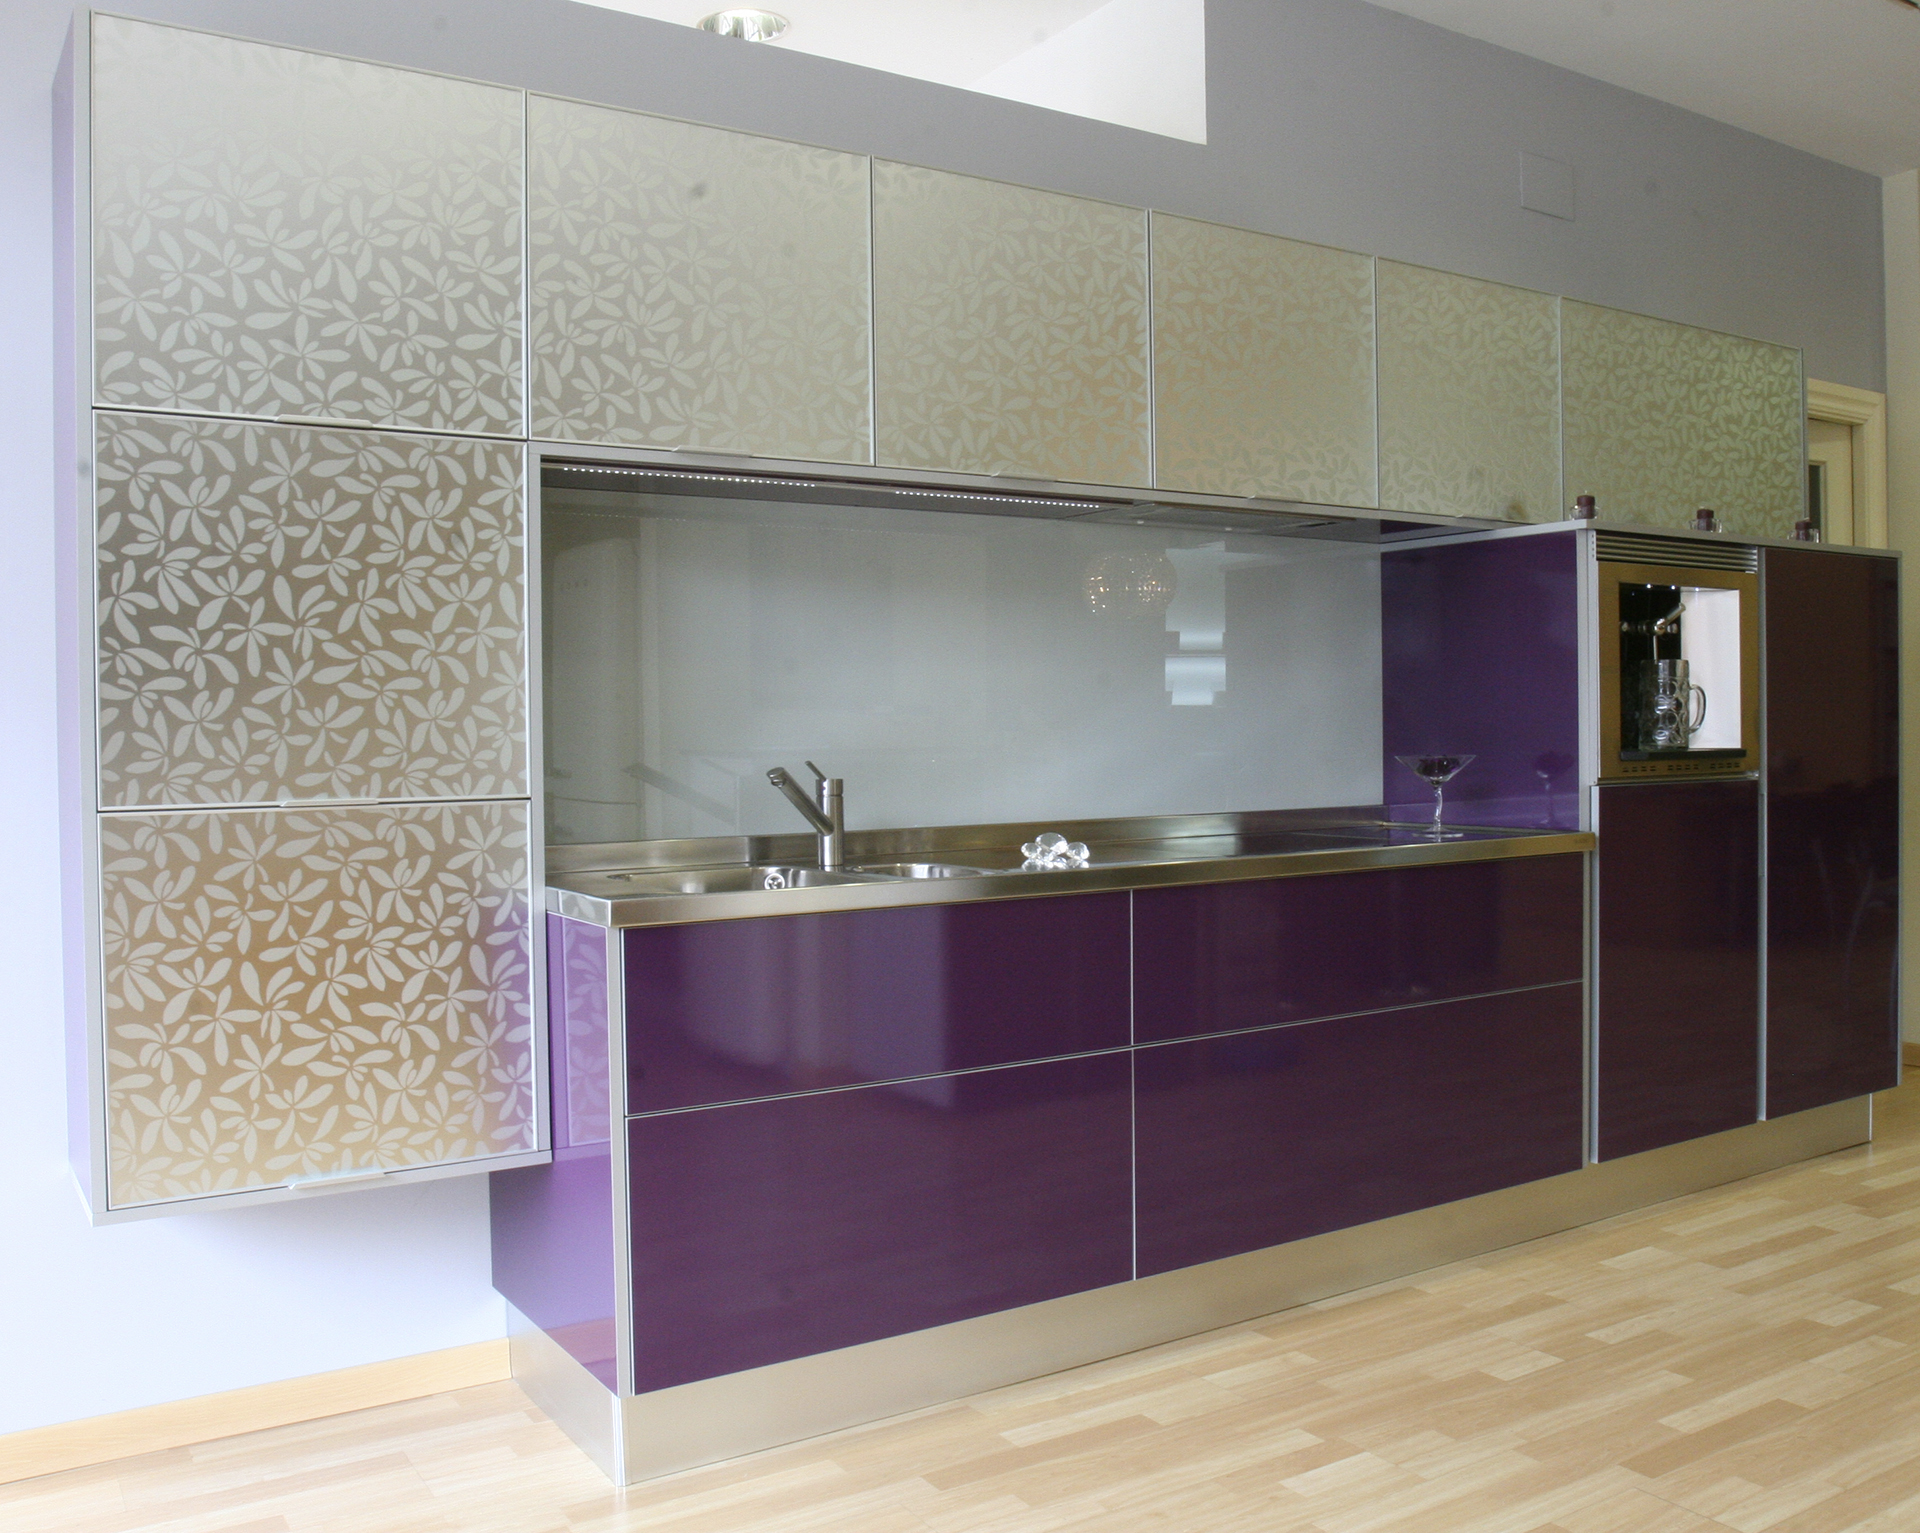 Cocinas moradas cocina blanca y morada if we ever build - Cocinas moradas modernas ...